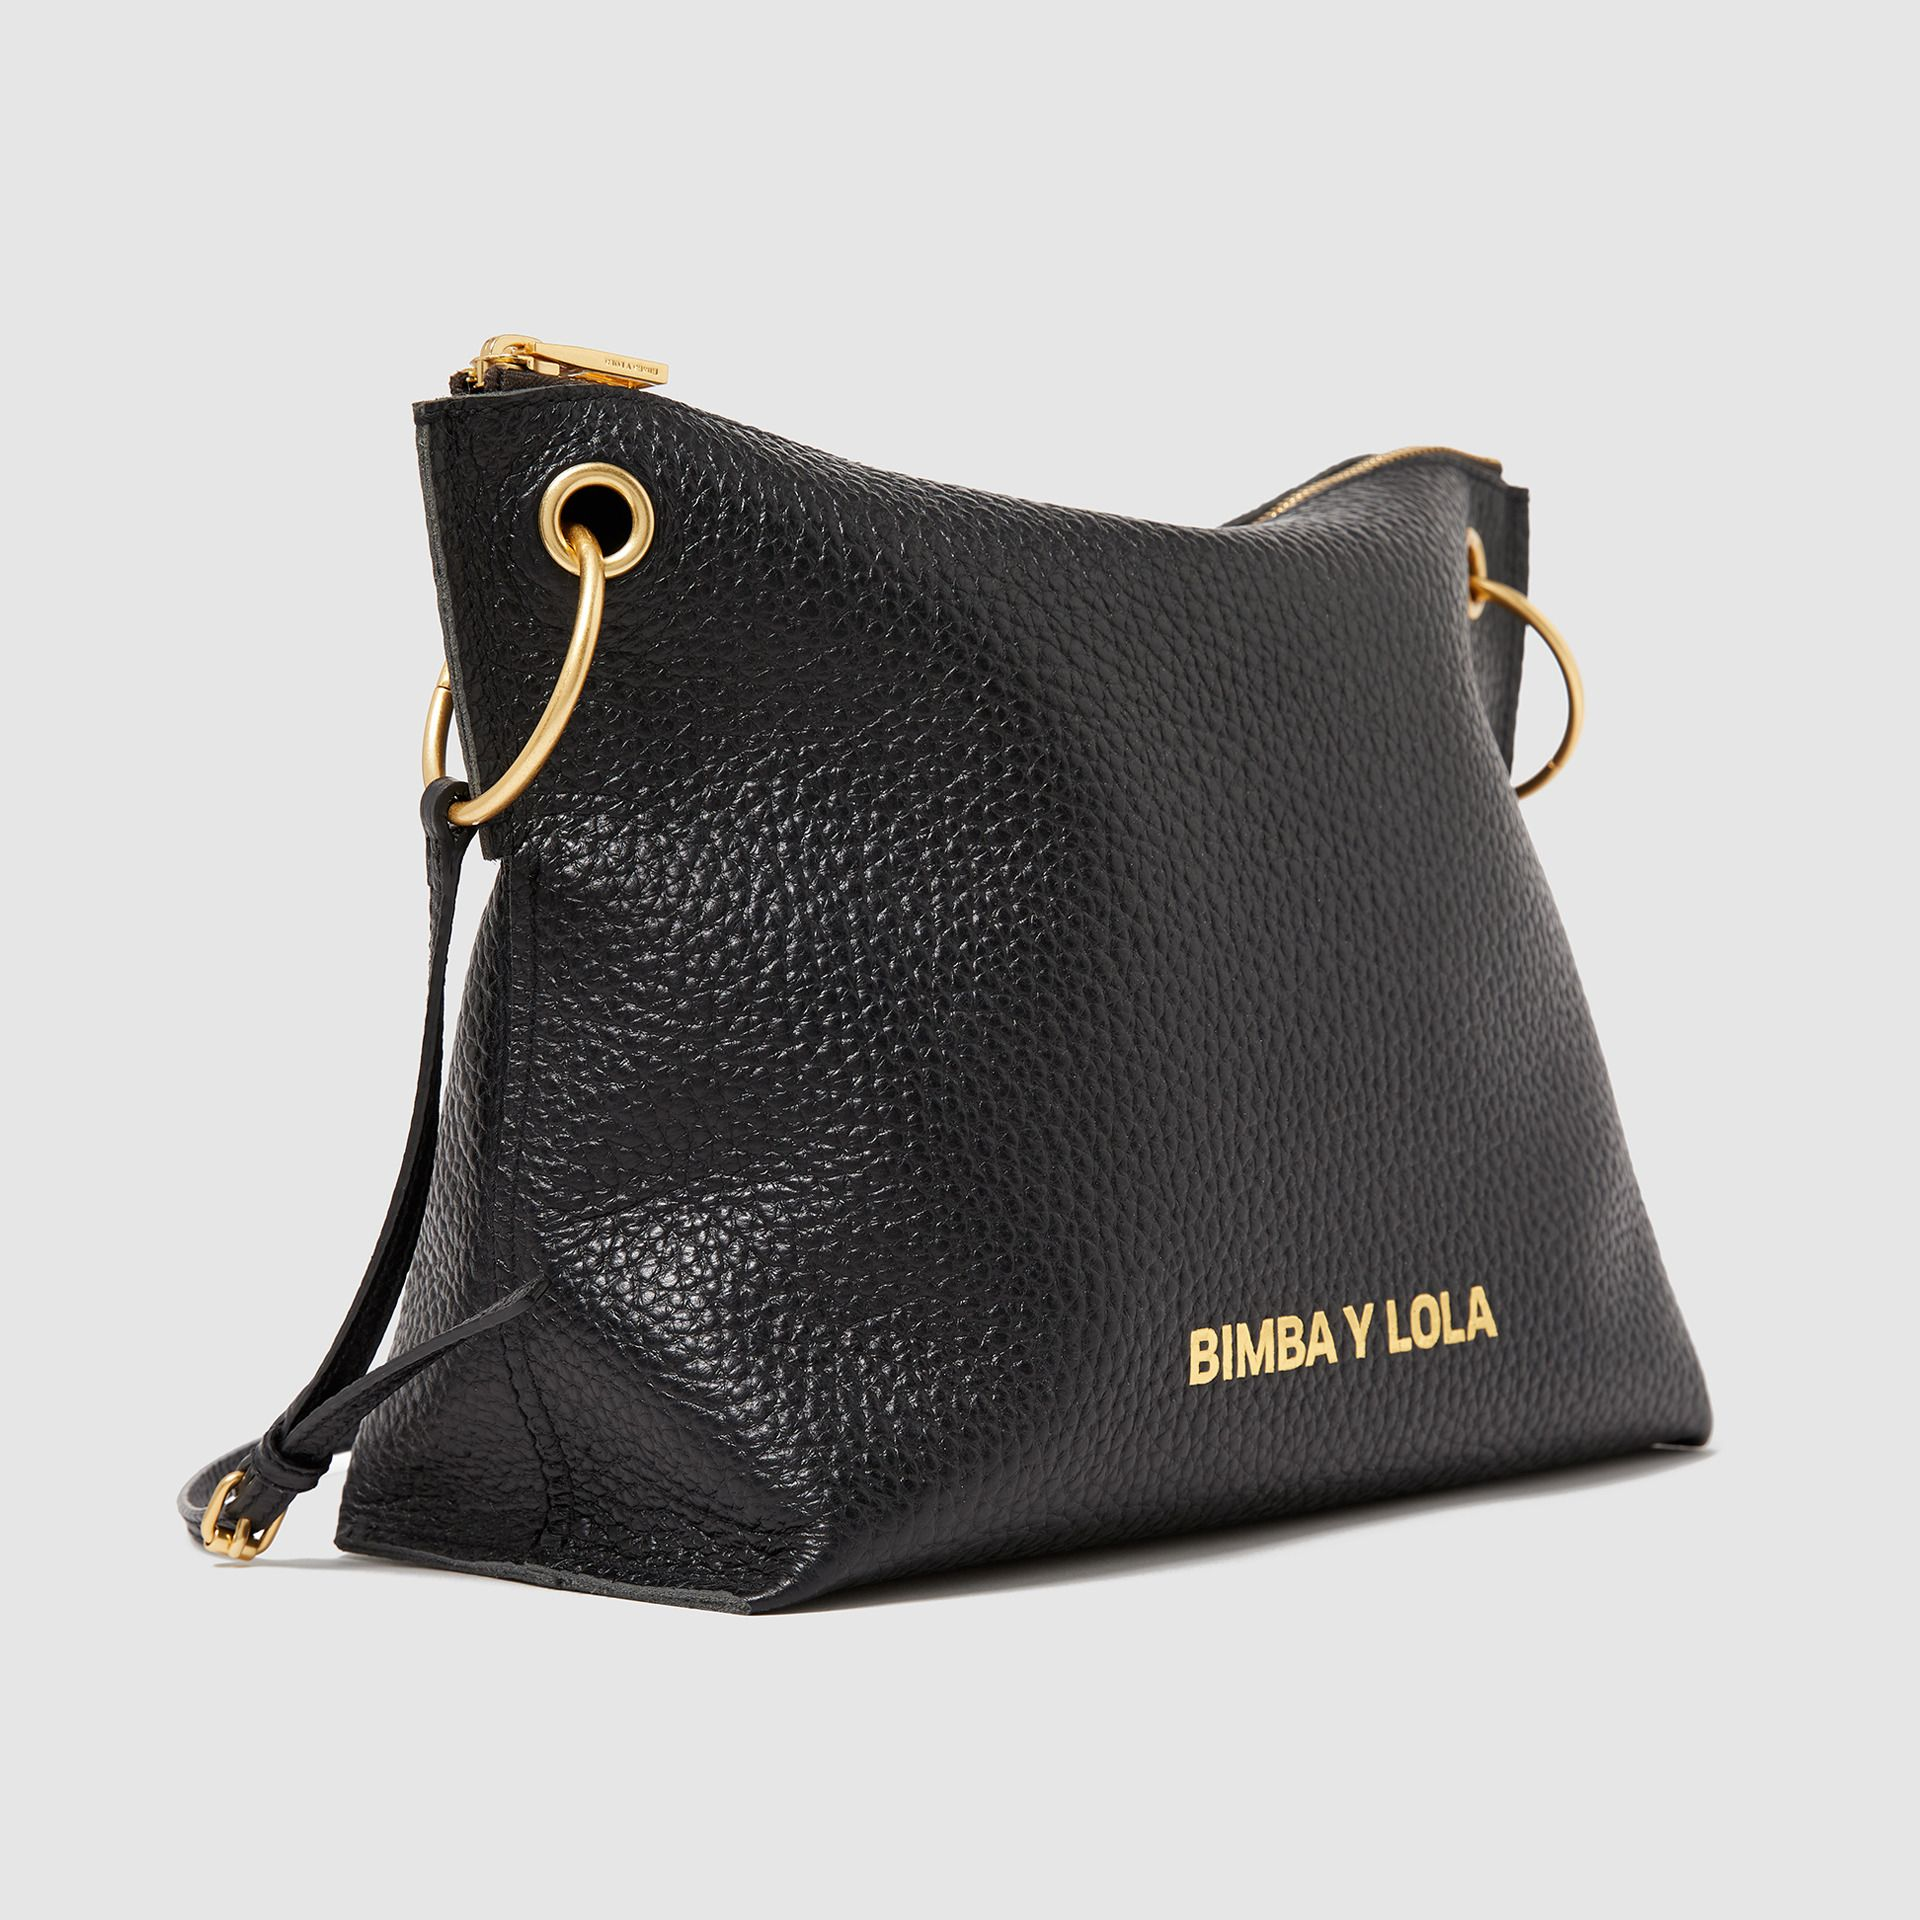 Trapezium Black Leather Crossbody Bag Bimba Y Lola Bolsos Bandolera Bolso Bandolera